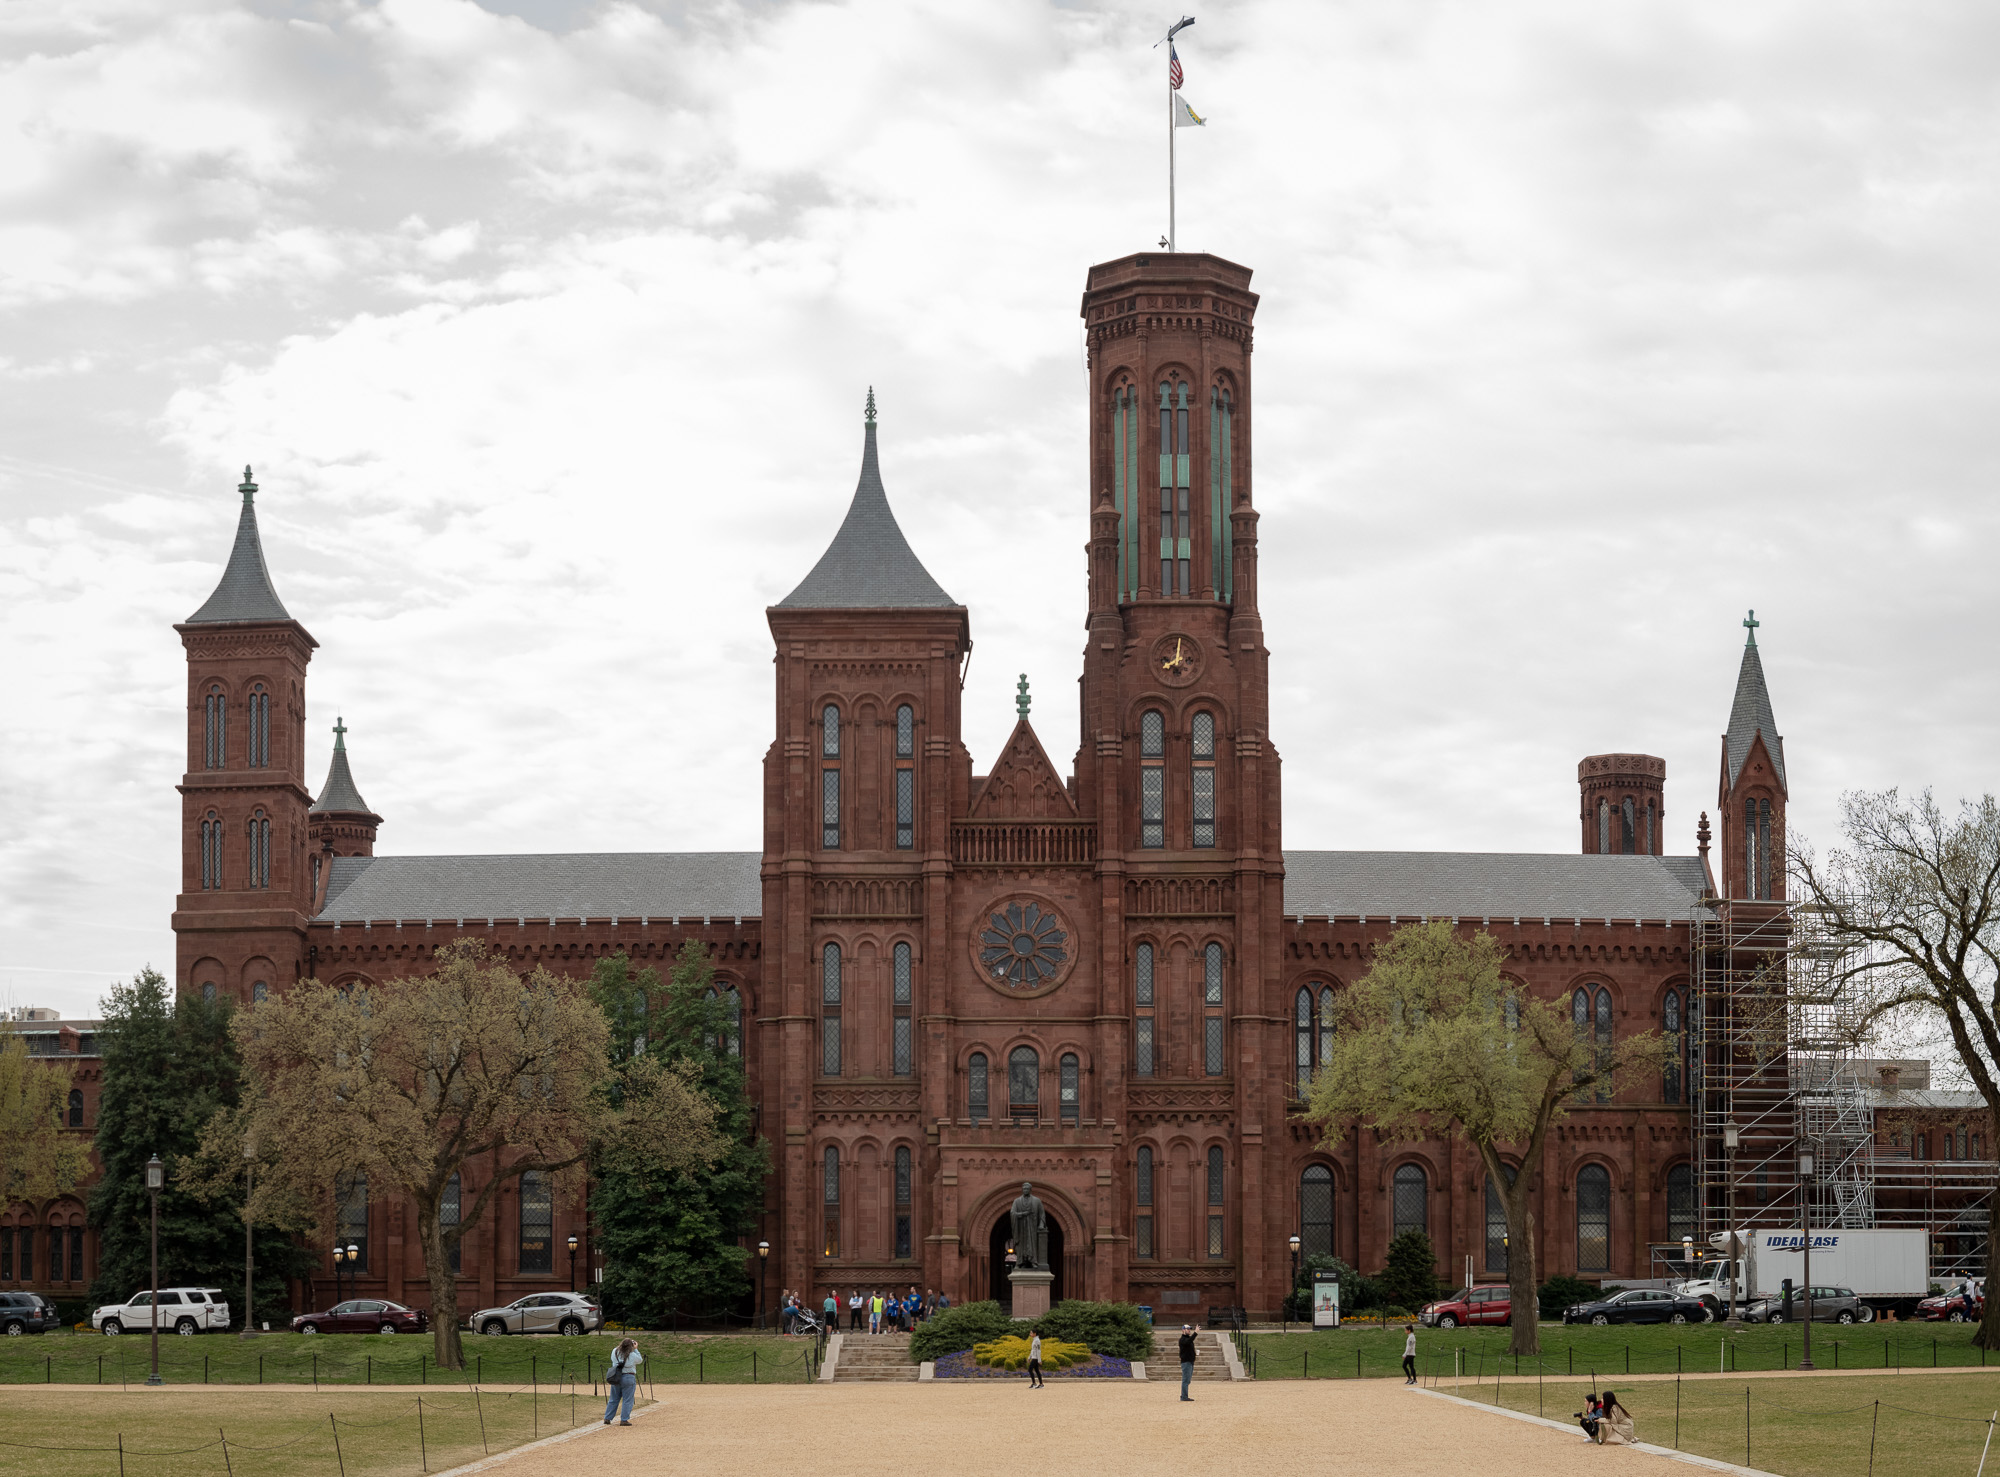 6 Image multi-level stitched panorama of the Smithsonian Castle.